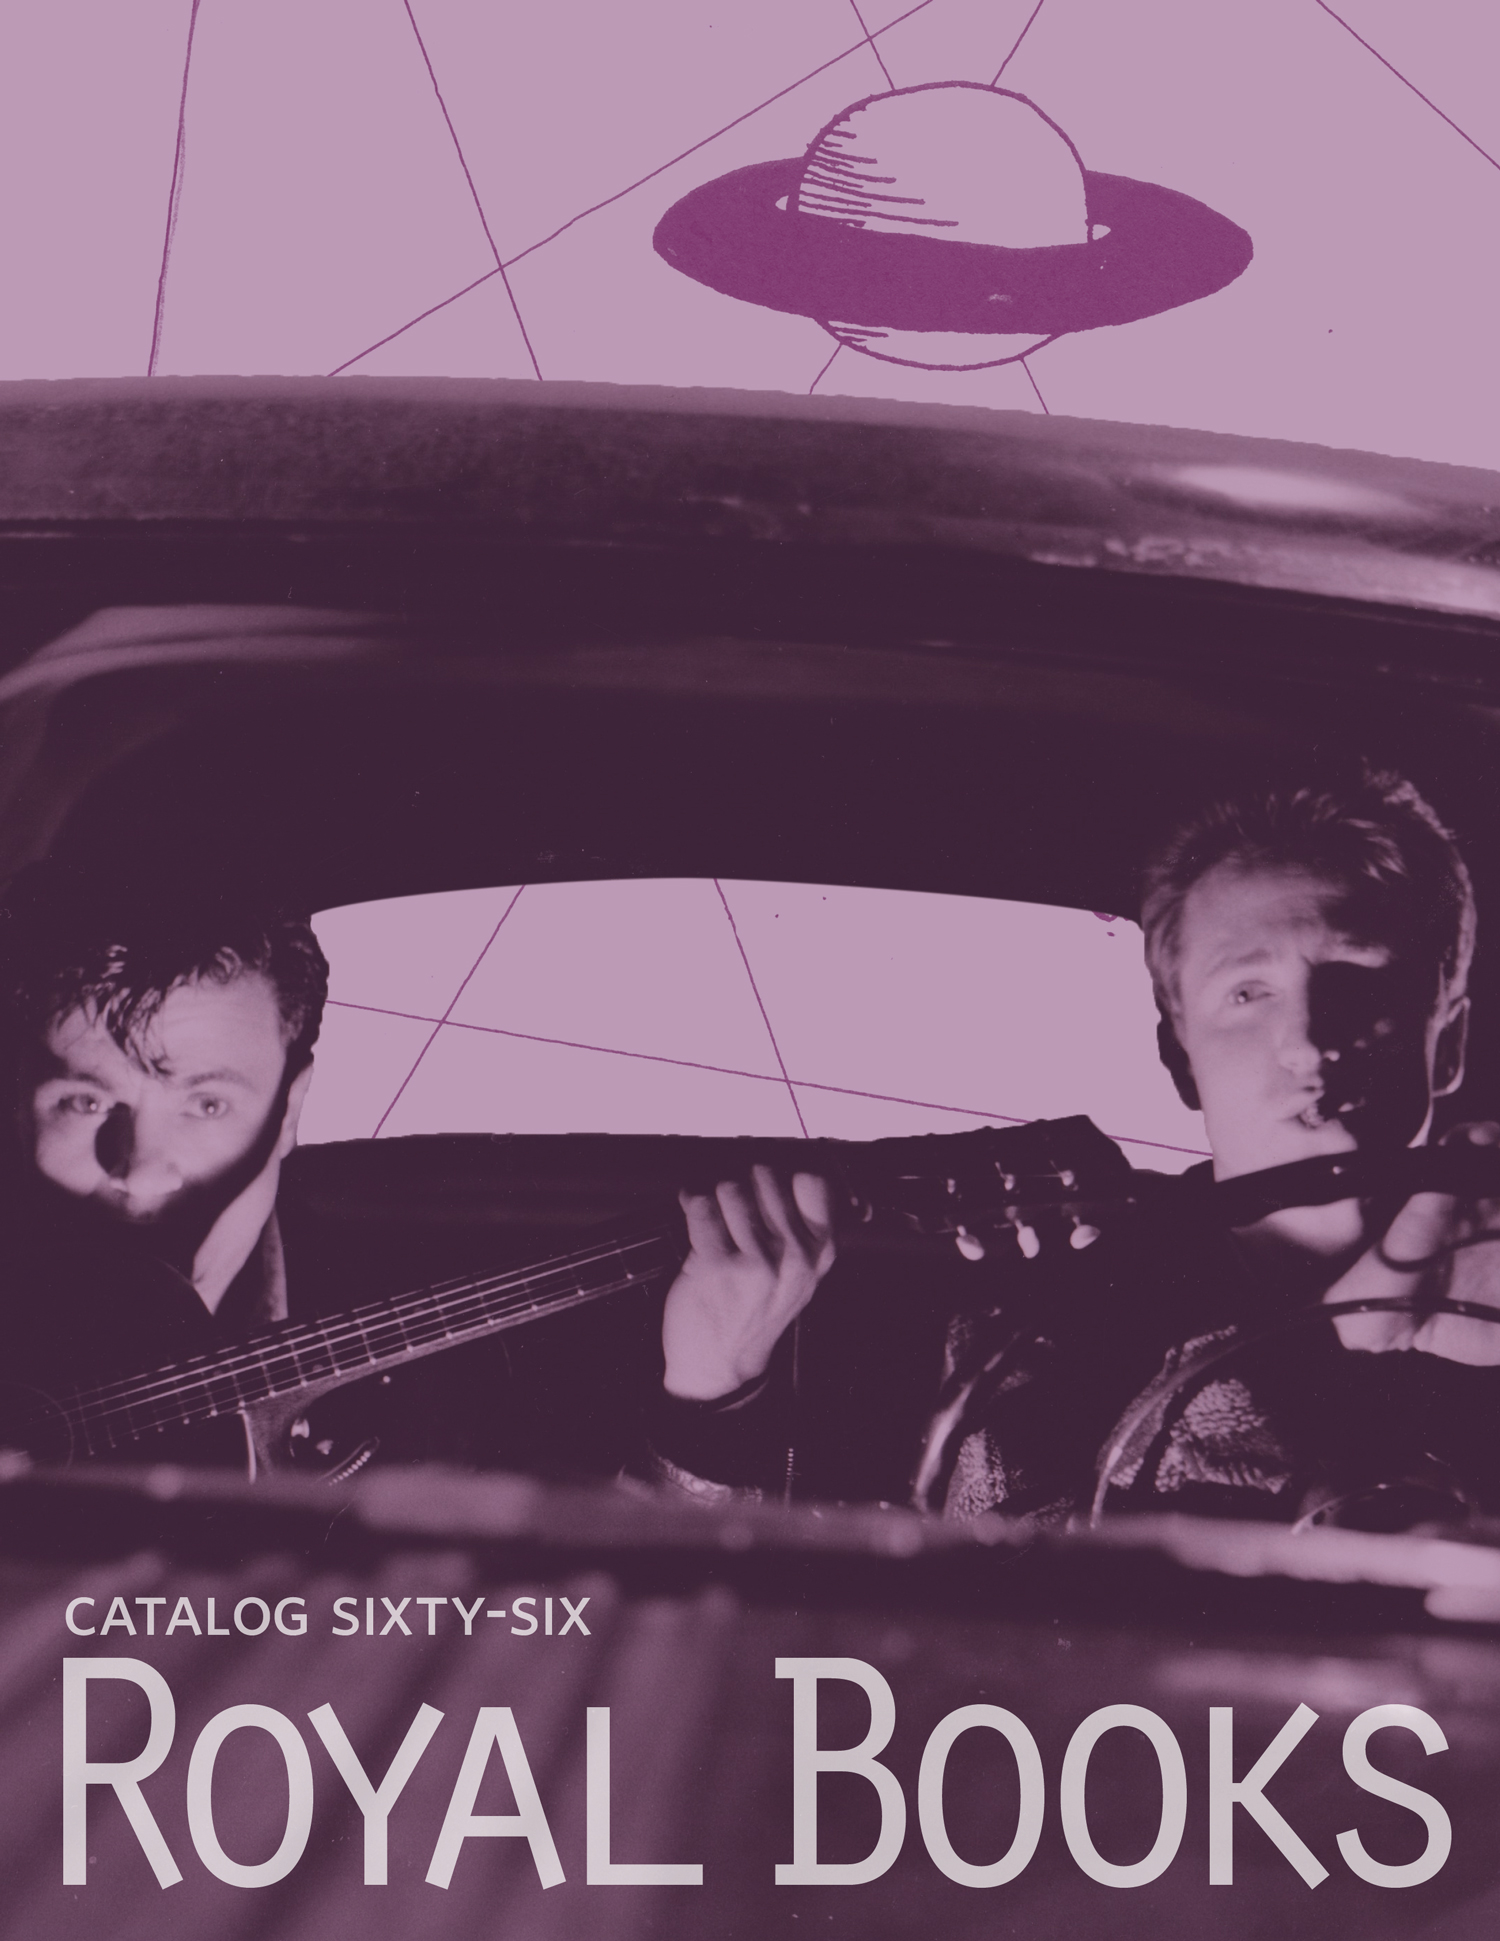 Catalog Sixty-Six